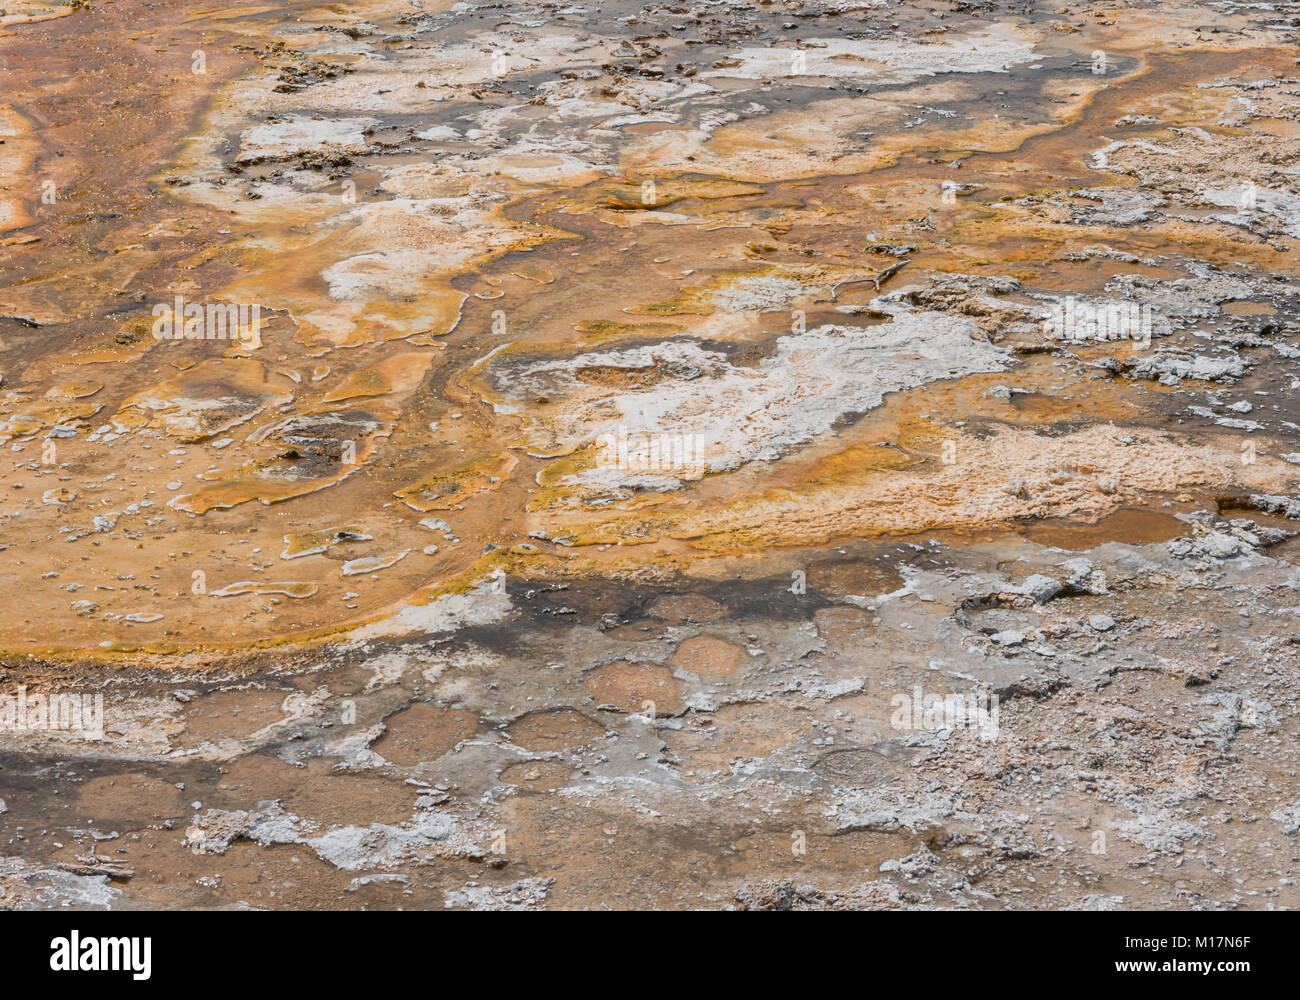 Close Up of Orange Residue  From Hot Spring in Yellowstone - Stock Image